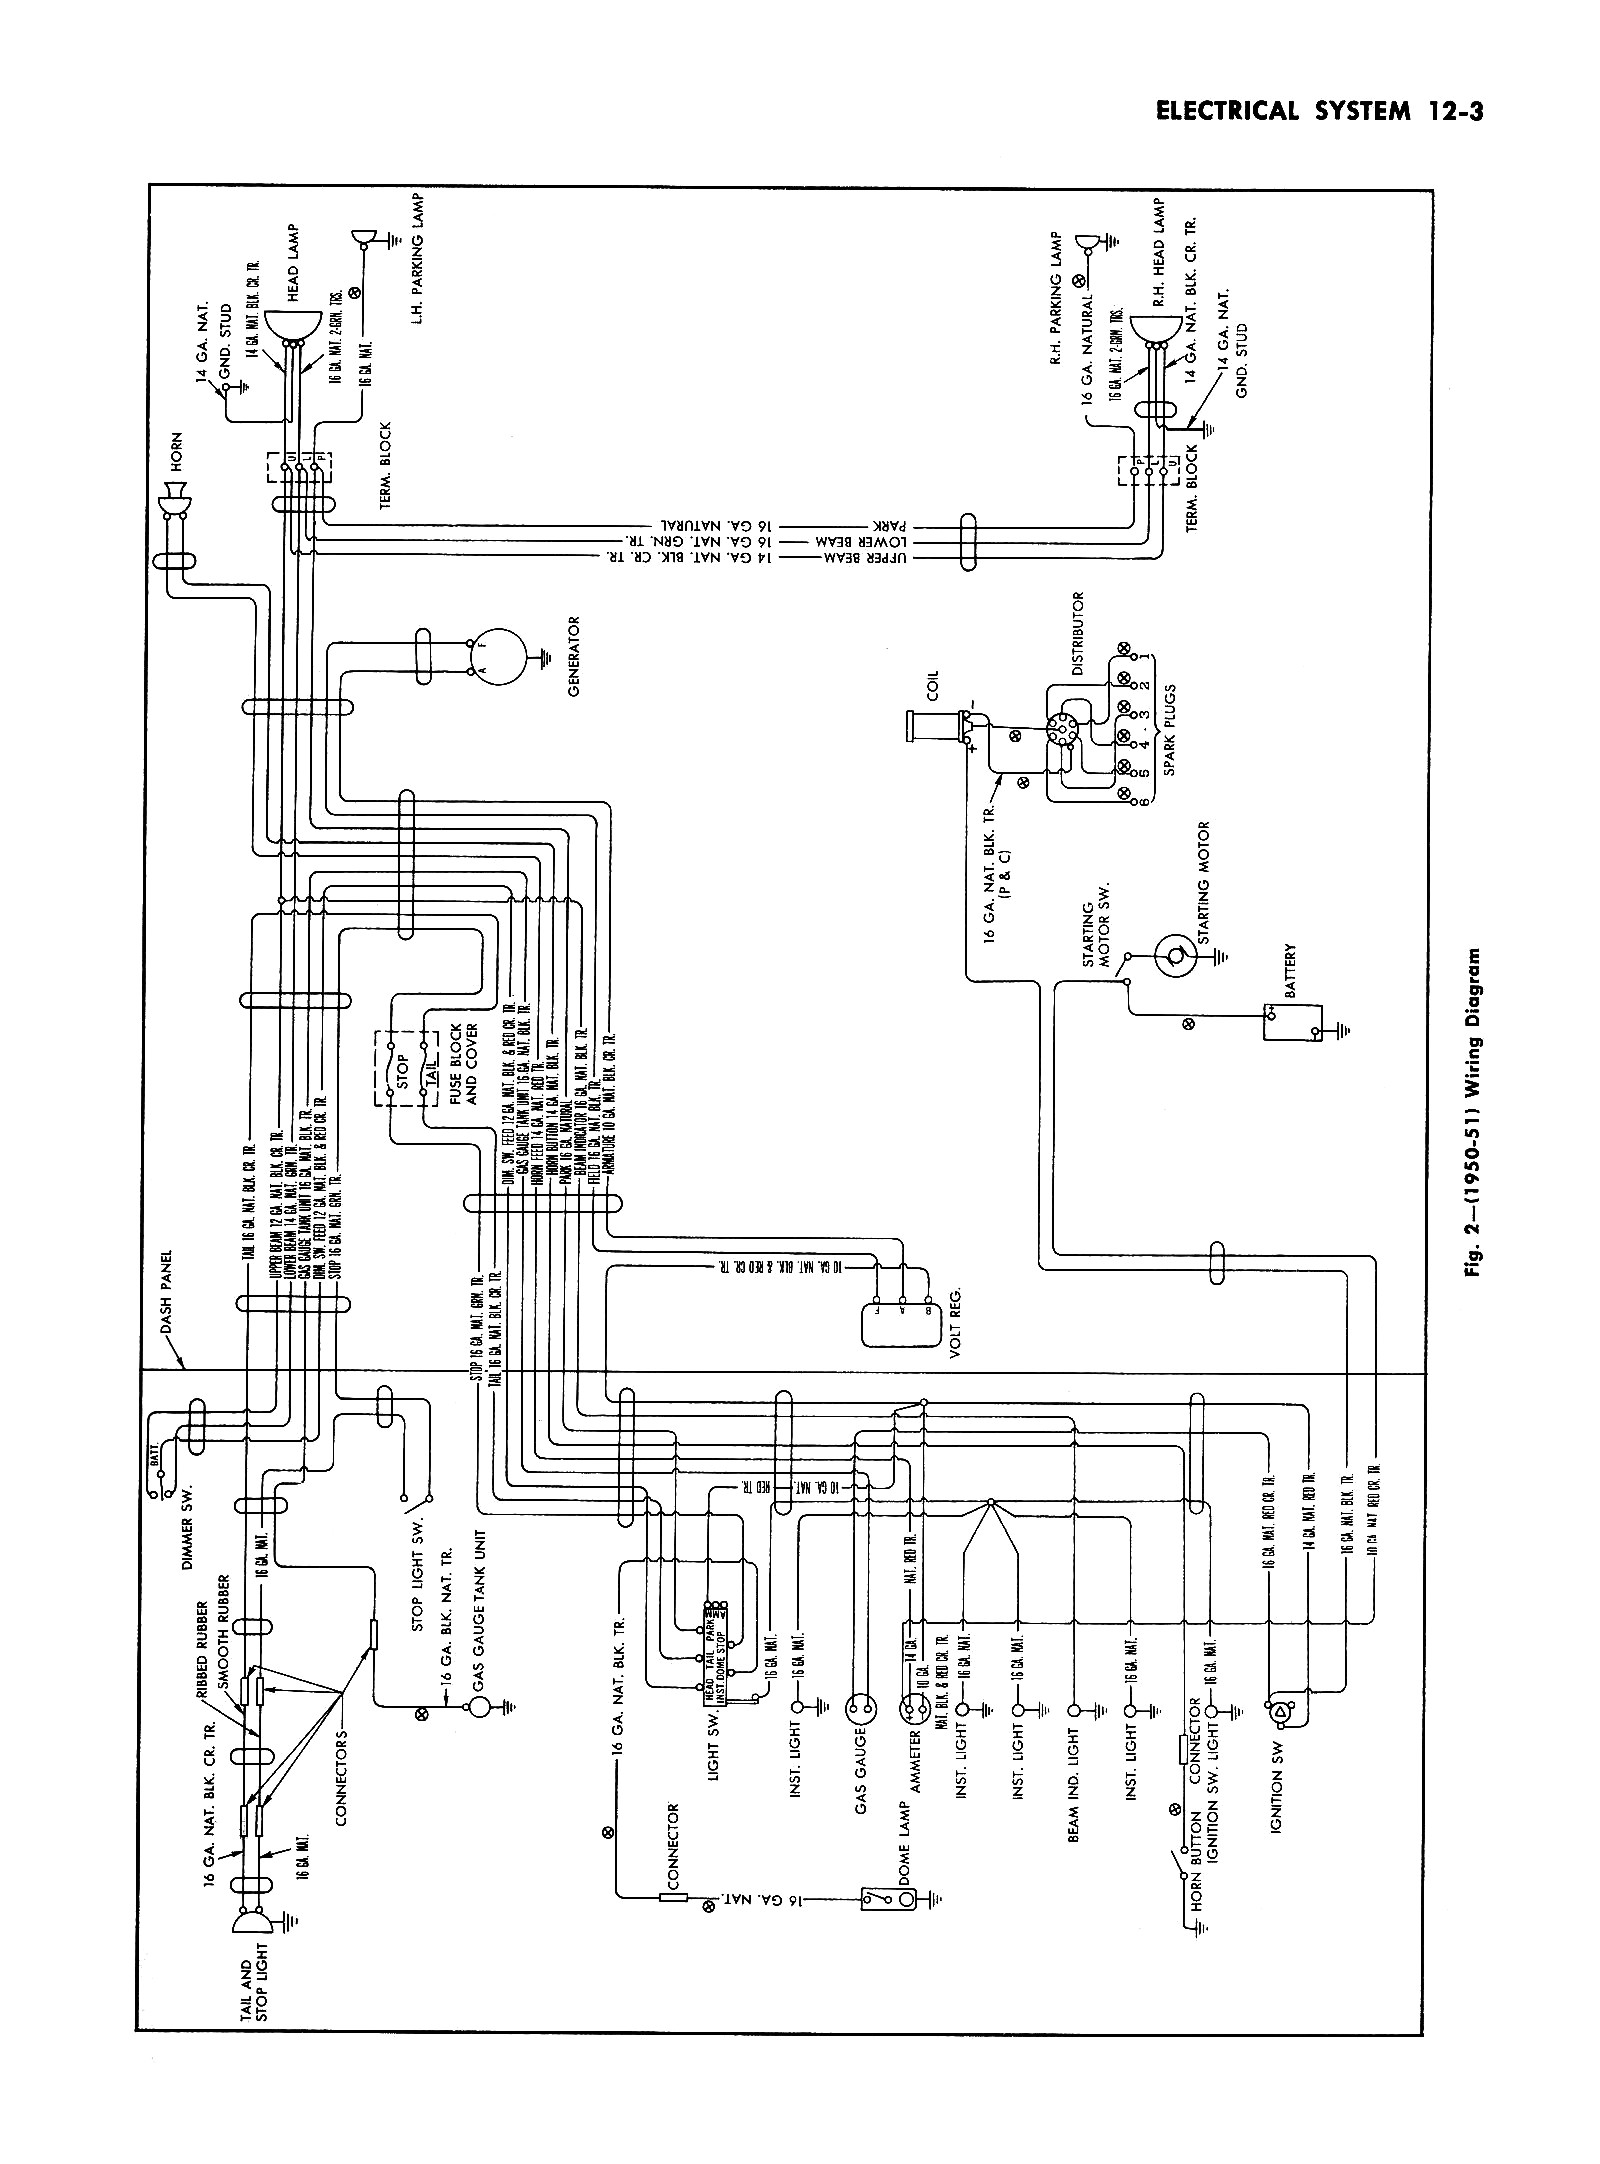 1948 Mercury Wiring Diagram Free For You Stereo Plymouth Simple Schema Rh 44 Aspire Atlantis De 500 Outboard Ignition Switch